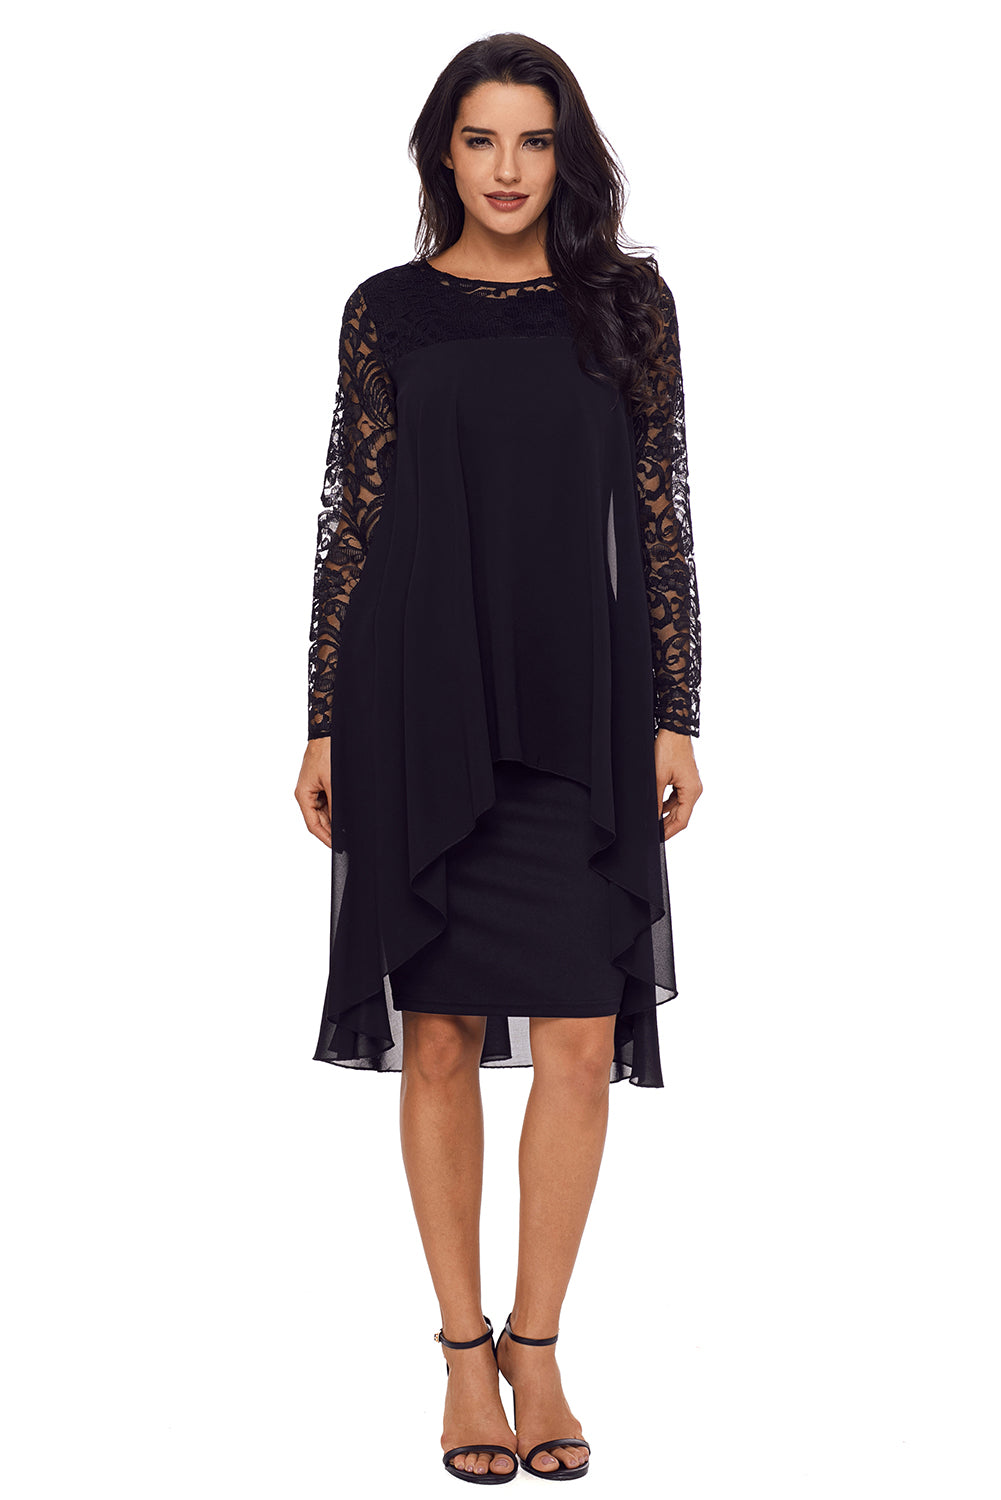 7e2f2451bfab Sexy Black Lace Long Sleeve Double Layer Midi Dress – SEXY AFFORDABLE  CLOTHING